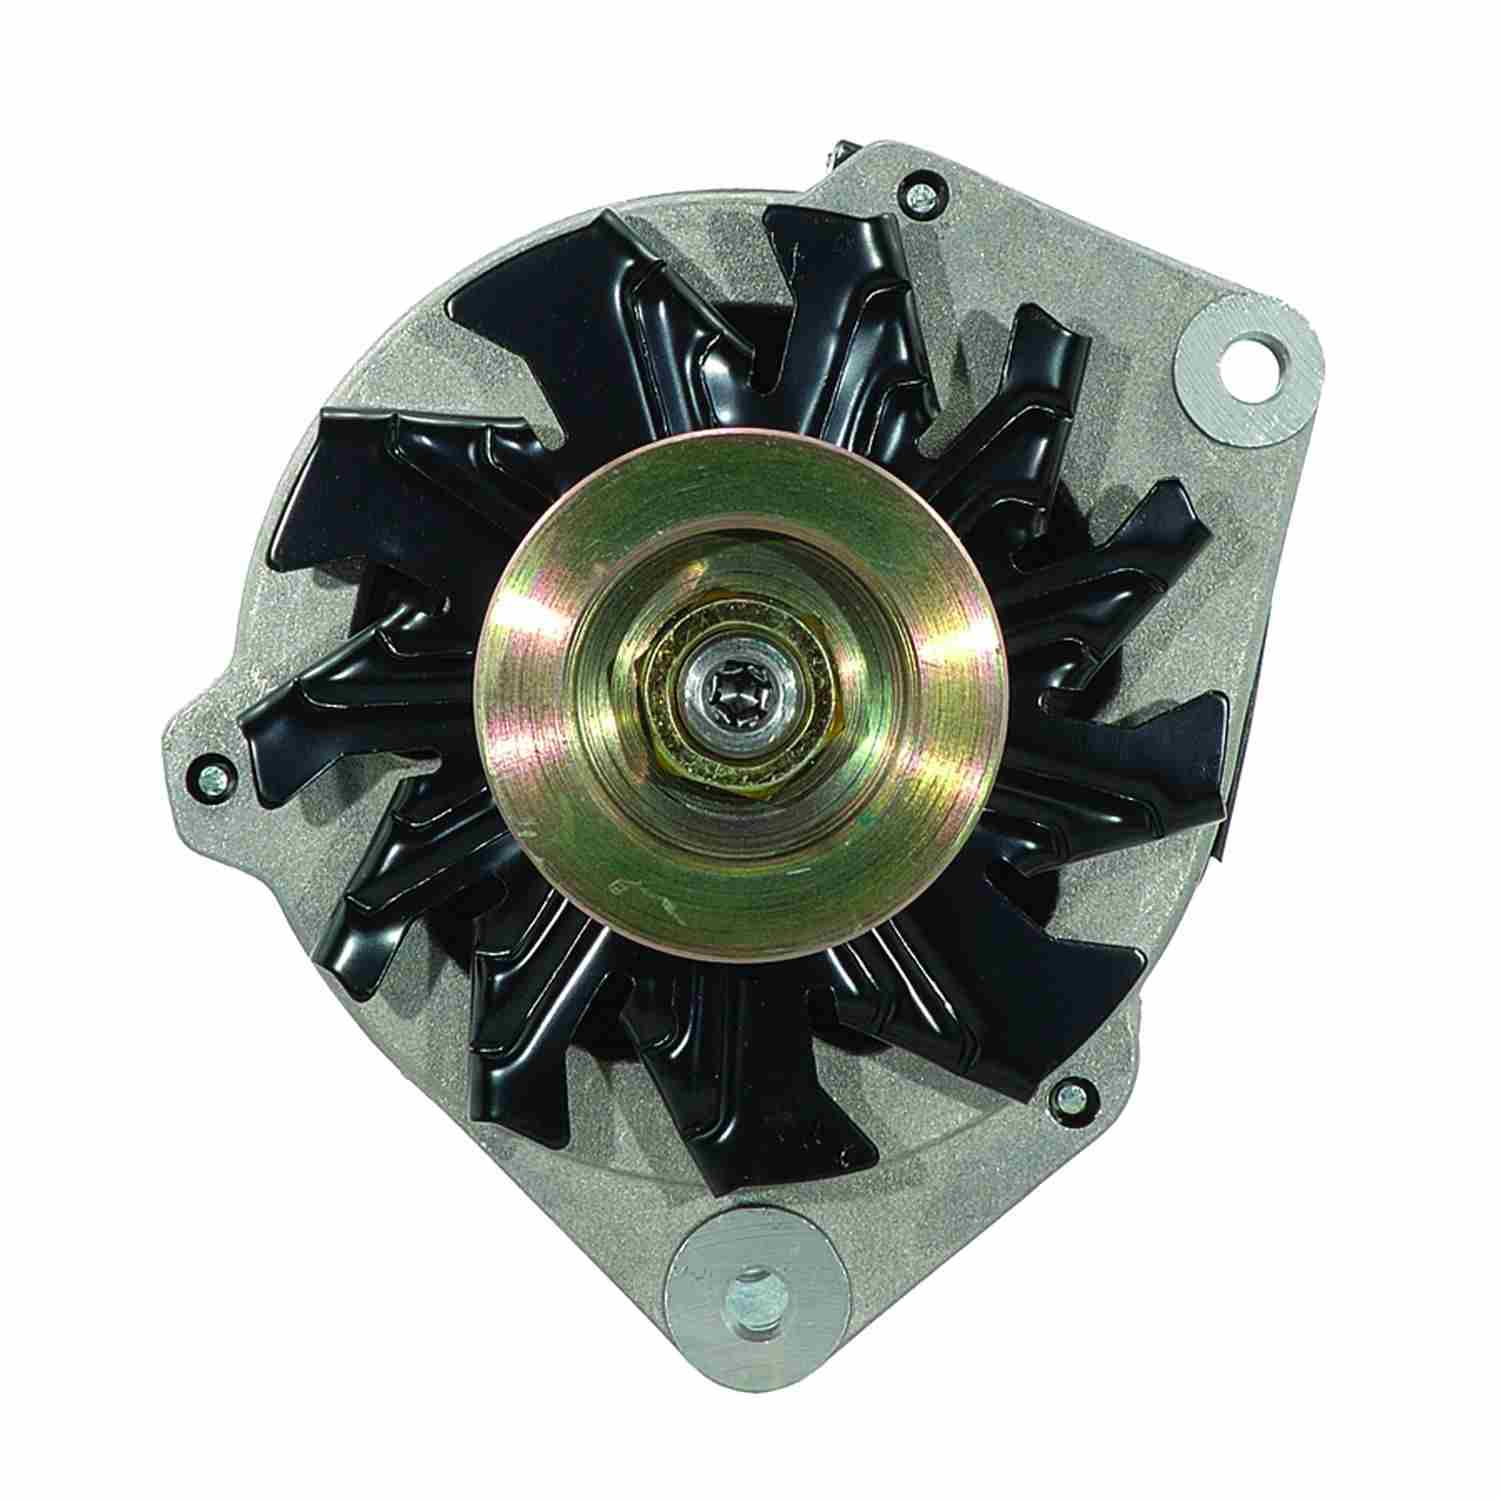 ACDELCO GOLD/PROFESSIONAL - Alternator - DCC 335-1036